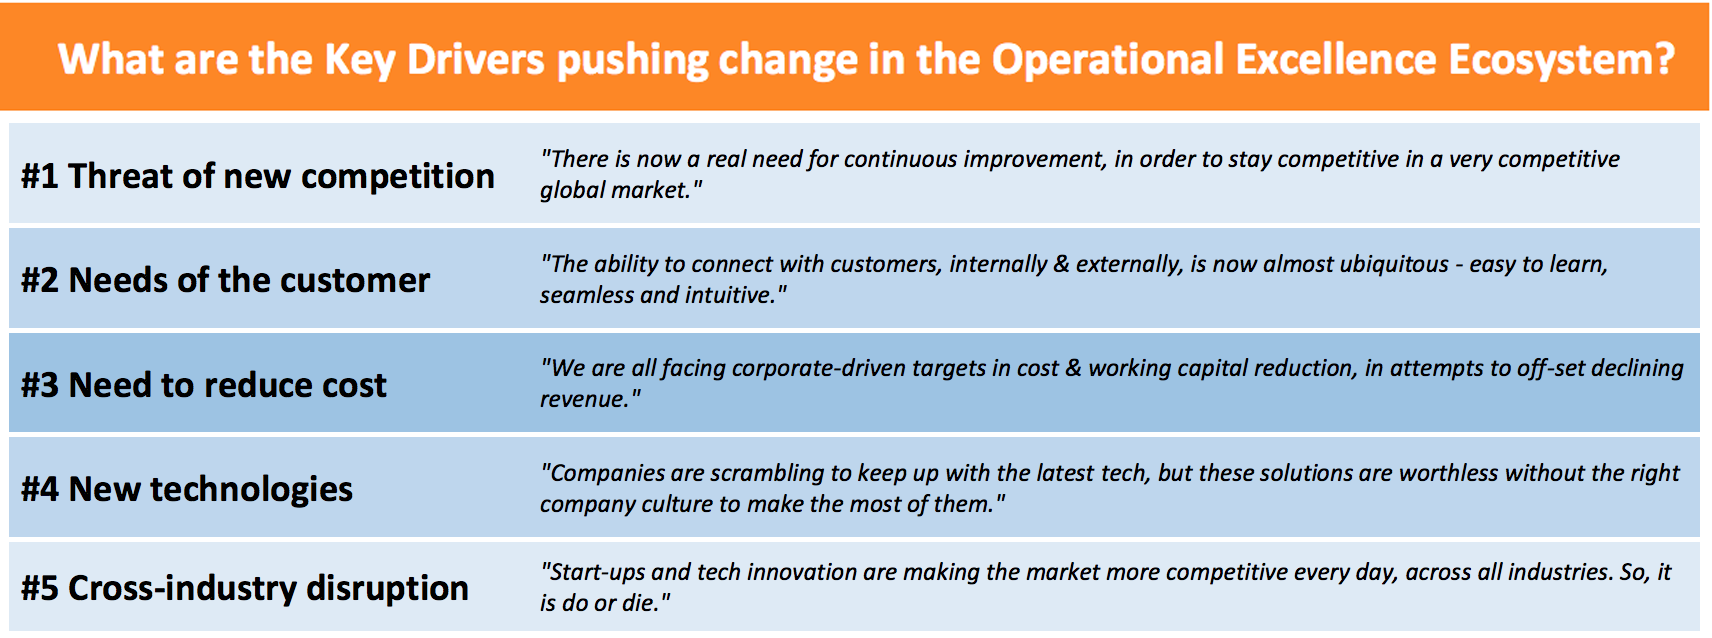 Key Drivers of Change in Operational Excellence methodologies